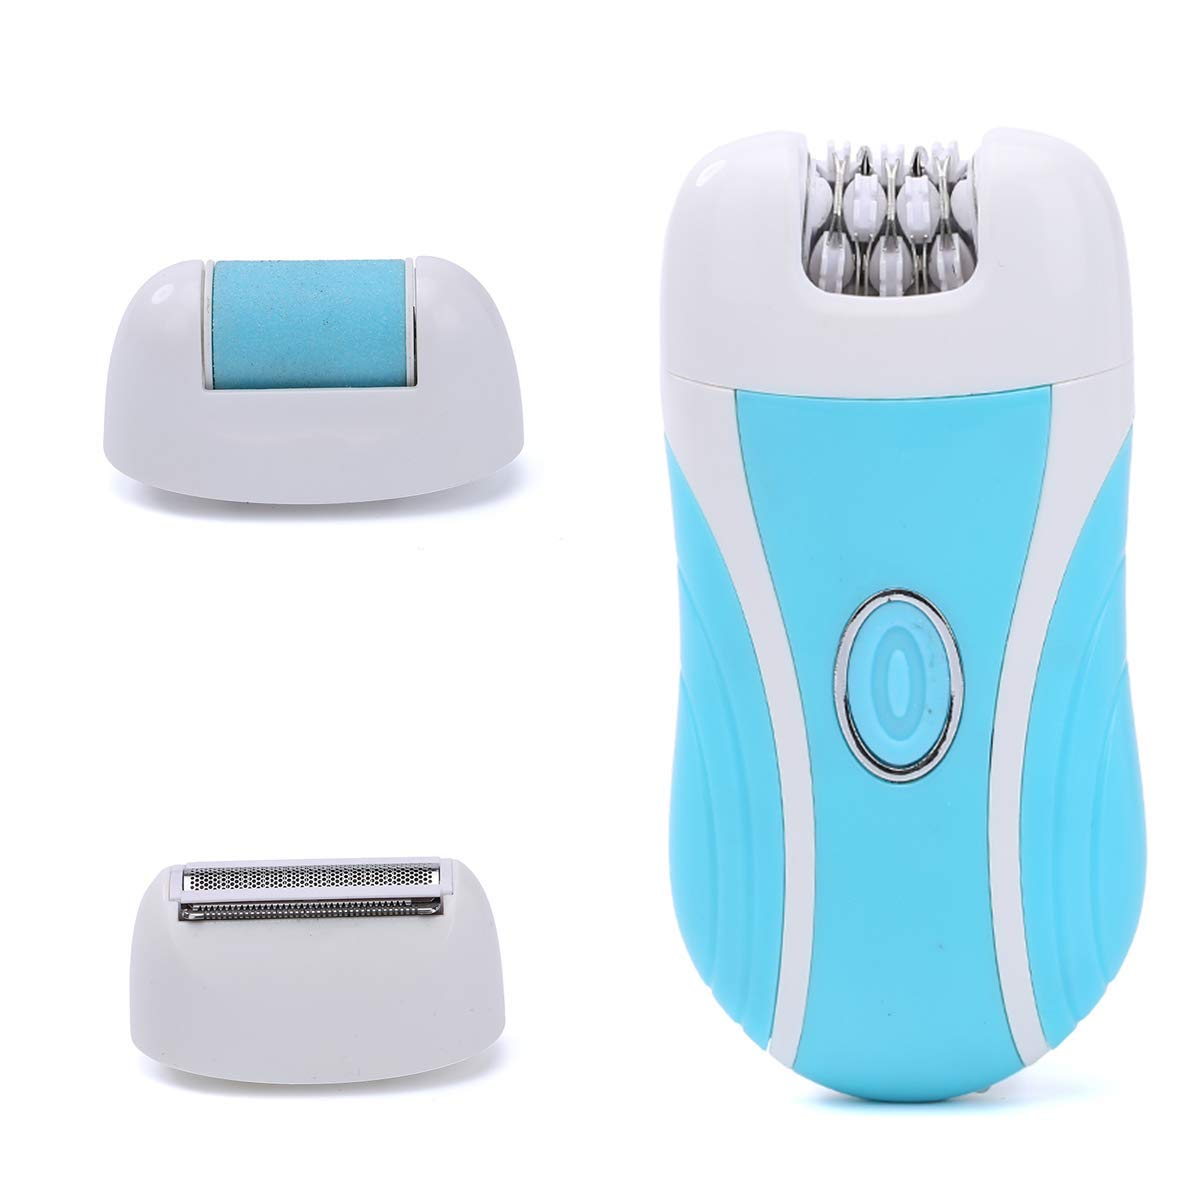 Portable Epilator Female Facial Hair Bikini Underarm Shaver Exfoliating, Portable Lady Epilator Set 3-in-1. Used to remove excess body hair.